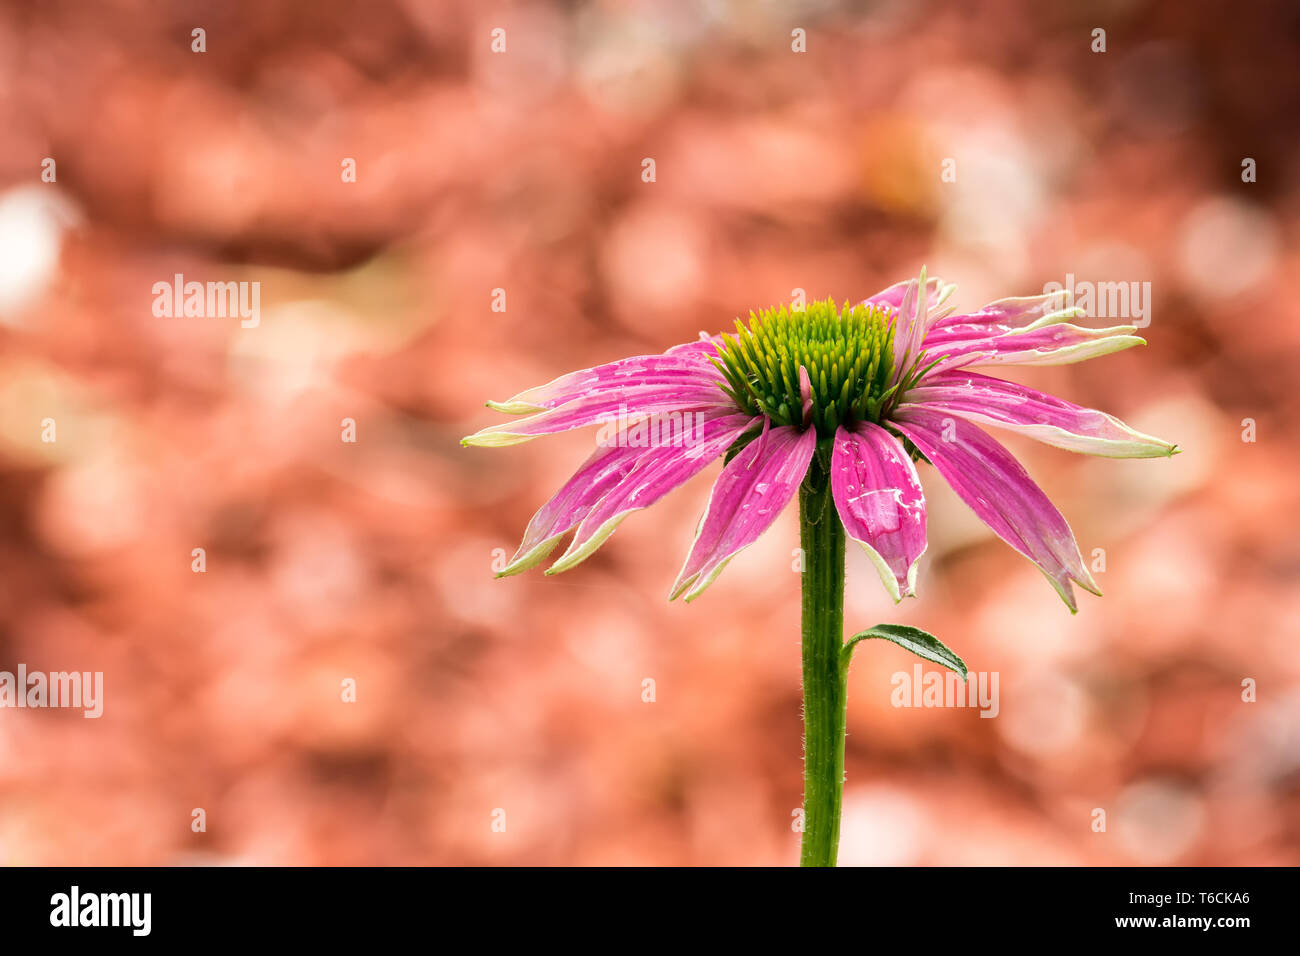 Pink colored coneflower after a summer rain - Focus Stacking - Stock Image